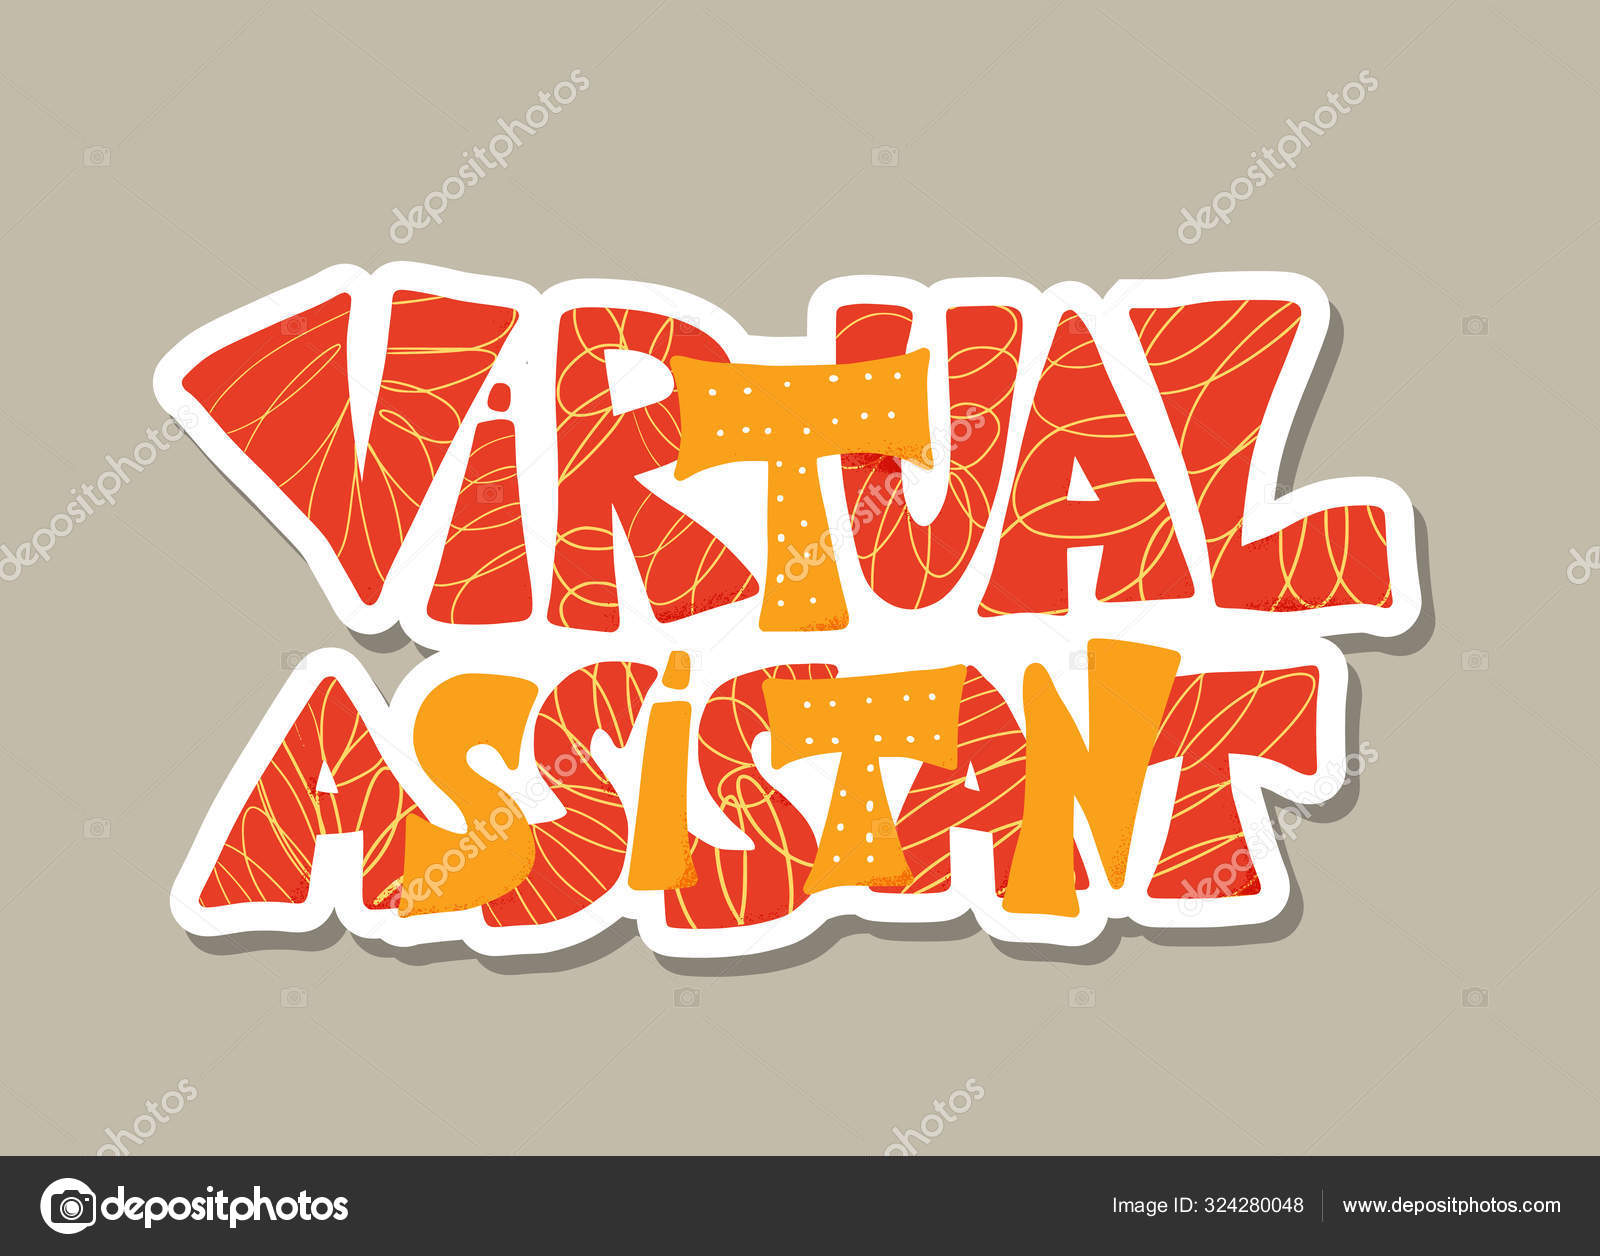 Virtual assistant text. Vector hand drawn quote.